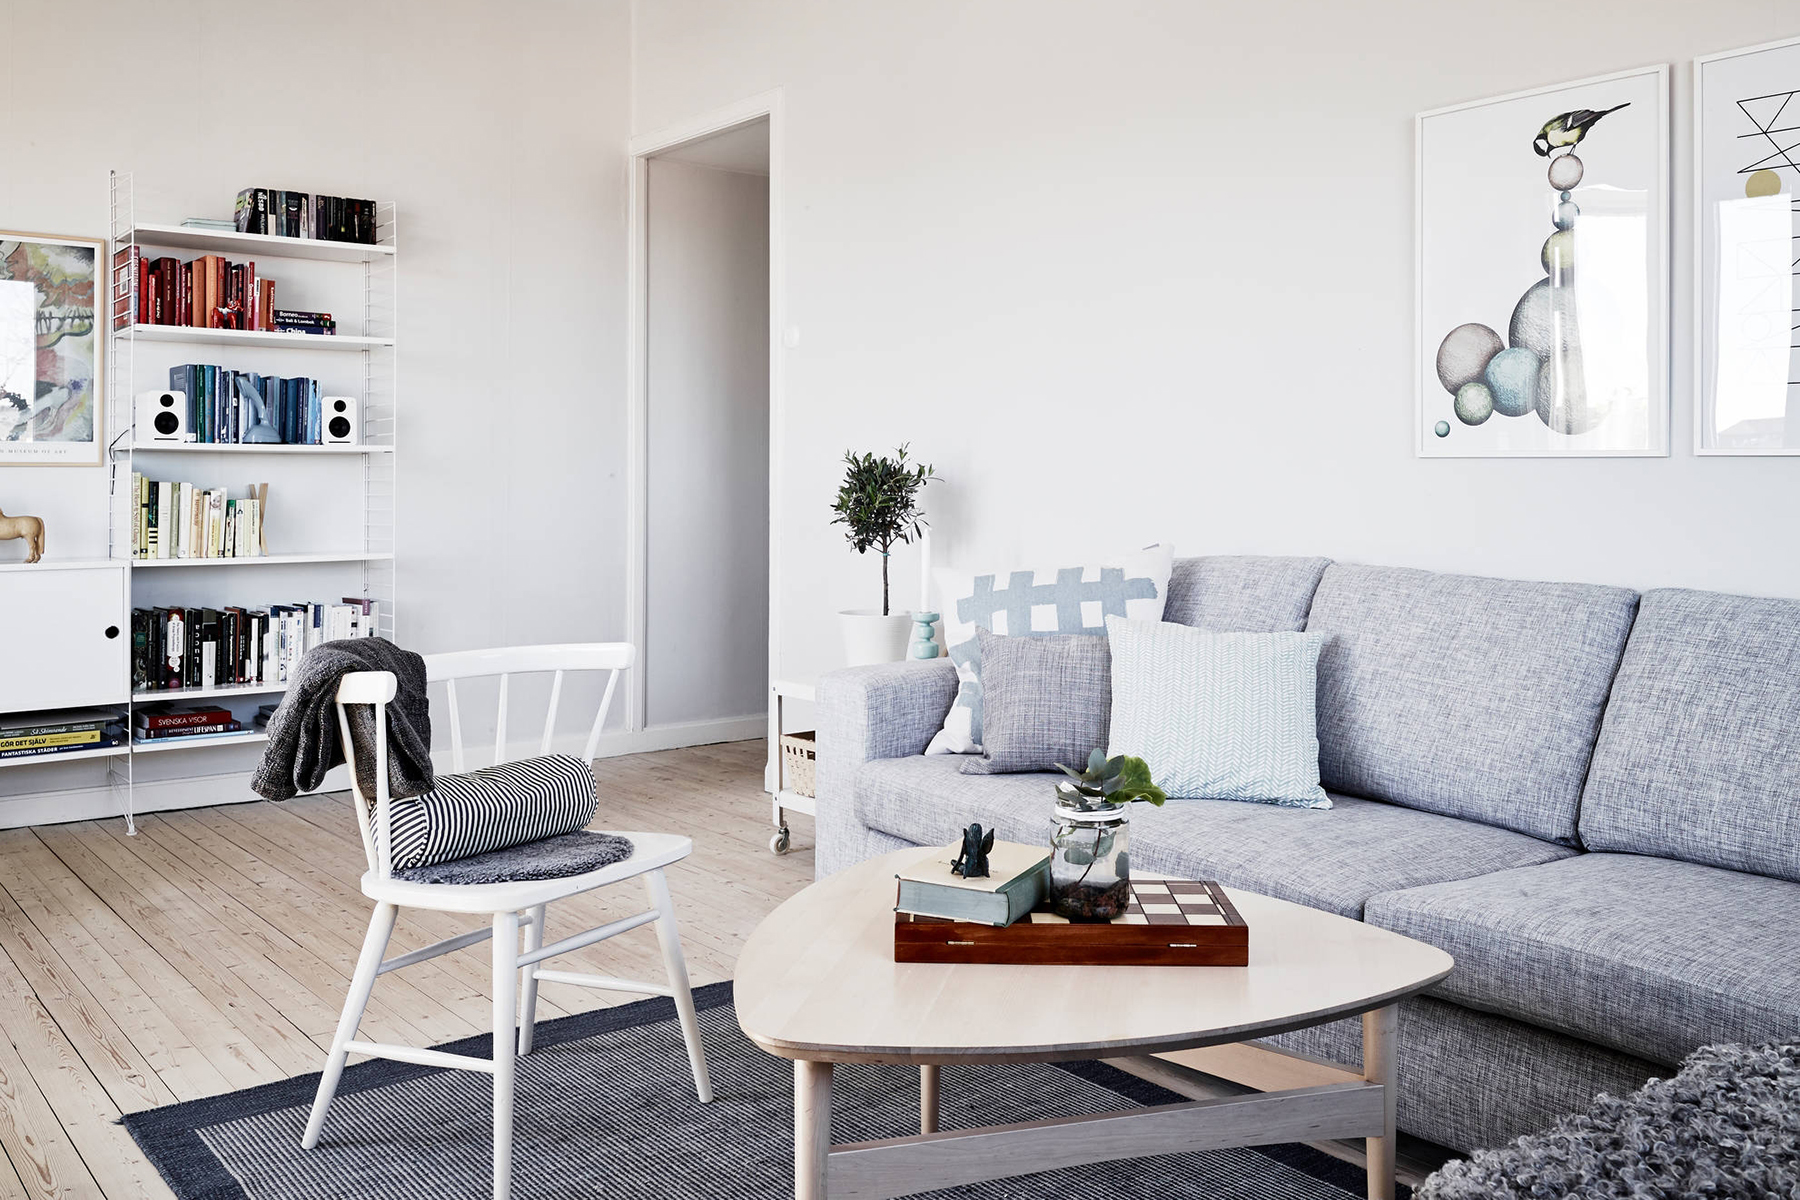 Scandinavian living room with neutral and pastel colors - Top 10 tips for adding Scandinavian style to your home | Happy Grey Lucky